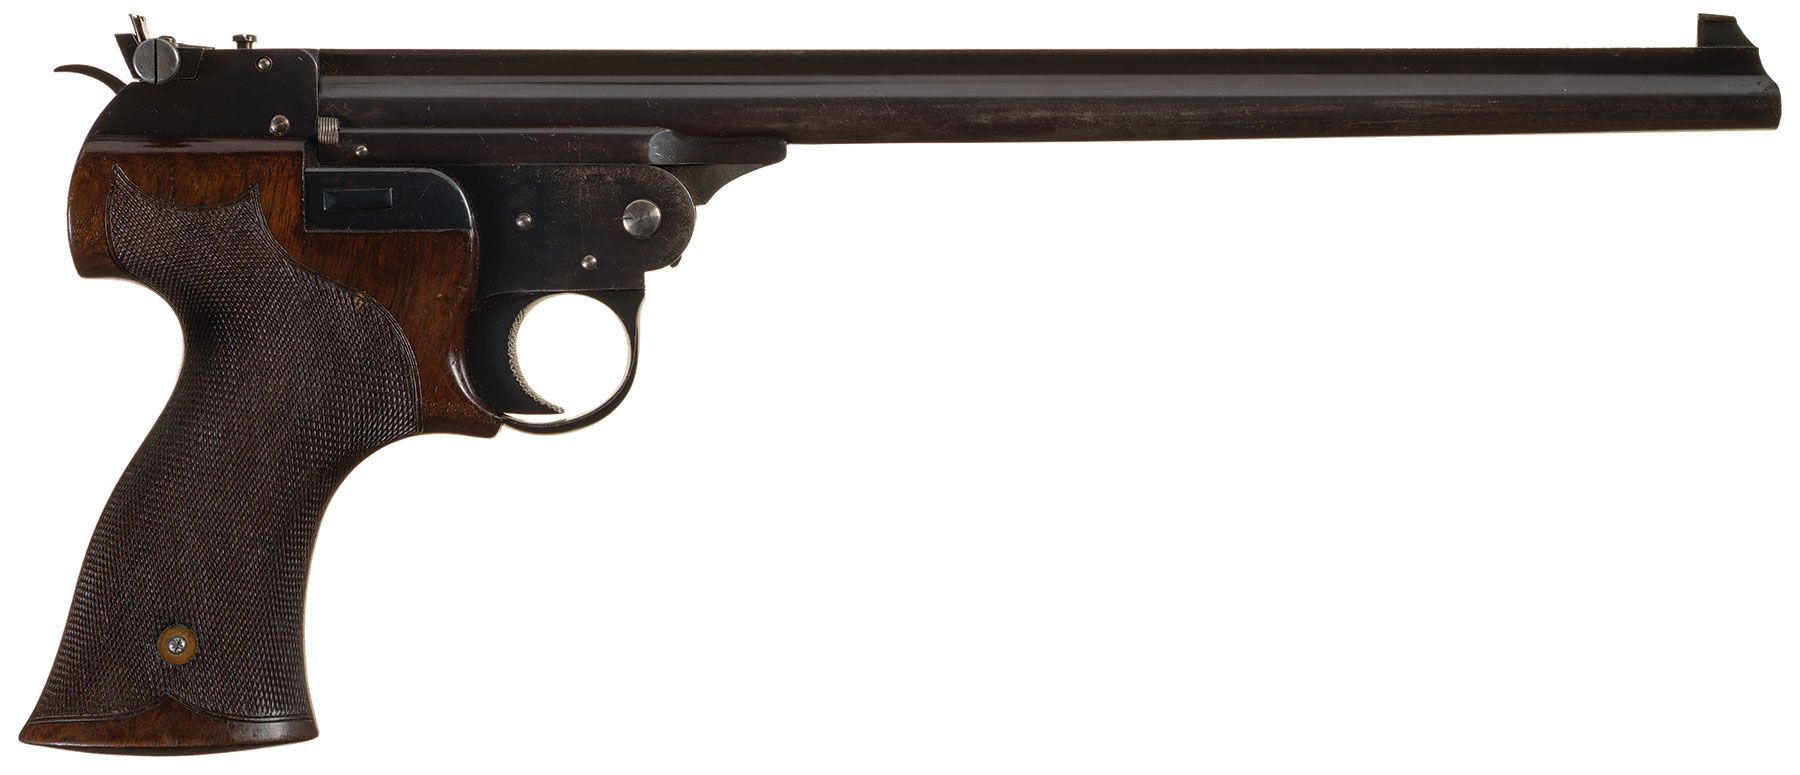 Adolph-Weber single shot target pistol